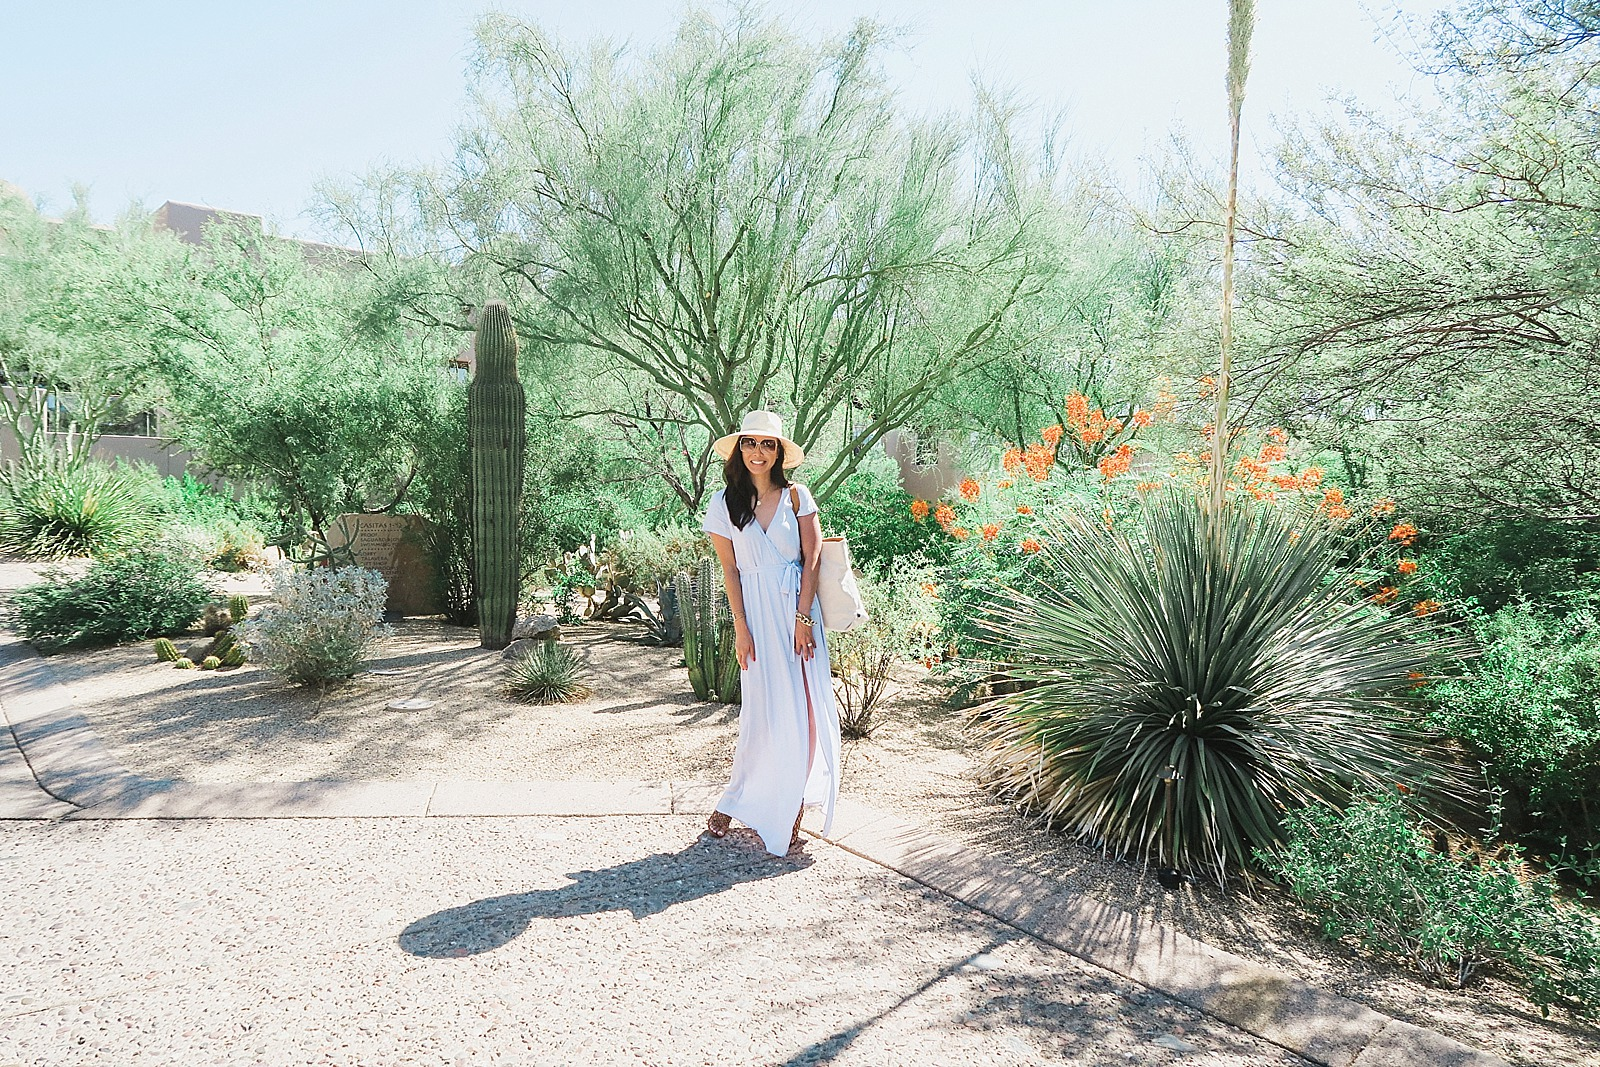 diana-elizabeth-blog-travel-fashion-blogger-phoenix-arizona-scottsdale-troon-four-seasons-scottsdale_0020